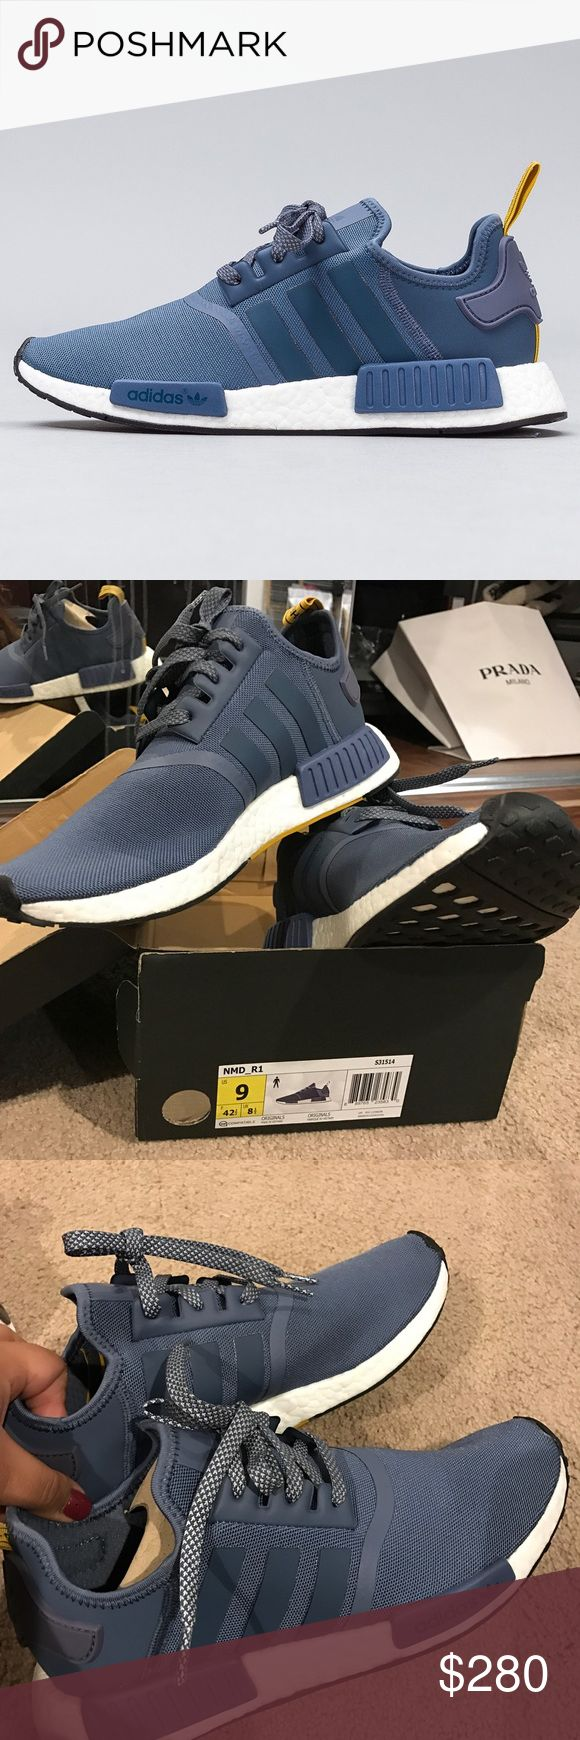 Size 10 Women, 9 Men Adidas NMD Tech Ink These are gorgeoussss adidas nmd. Hard to find. Rare. New in Box. Have never been worn out, only tried on. They are a size 9 men, 10 in women. They are pretty roomy. Not going to lie, i bought 5 NMDs and im just trying to sell some lol. :) THE MOST COMFORTABLE SNEAKERS EVER 😍😭 and i was never really an adidas fan before. AUTHENTICCC 💯💯💯 i have the receipt. PRICE NEGOTIABLE Adidas Shoes Sneakers